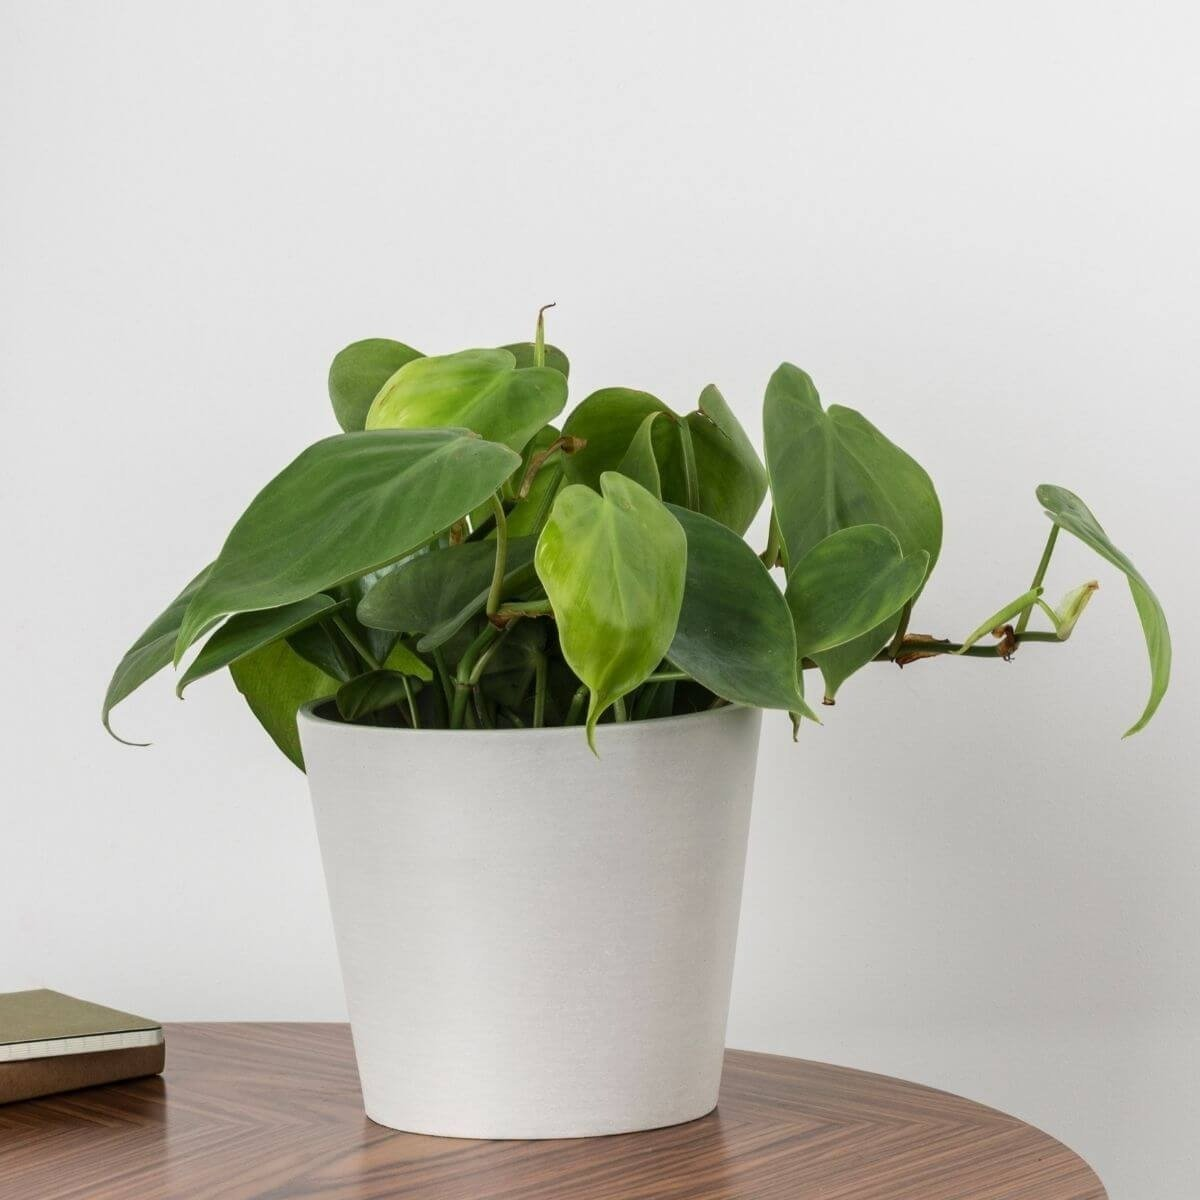 Heart-leaf philodendron - Scandiscapes